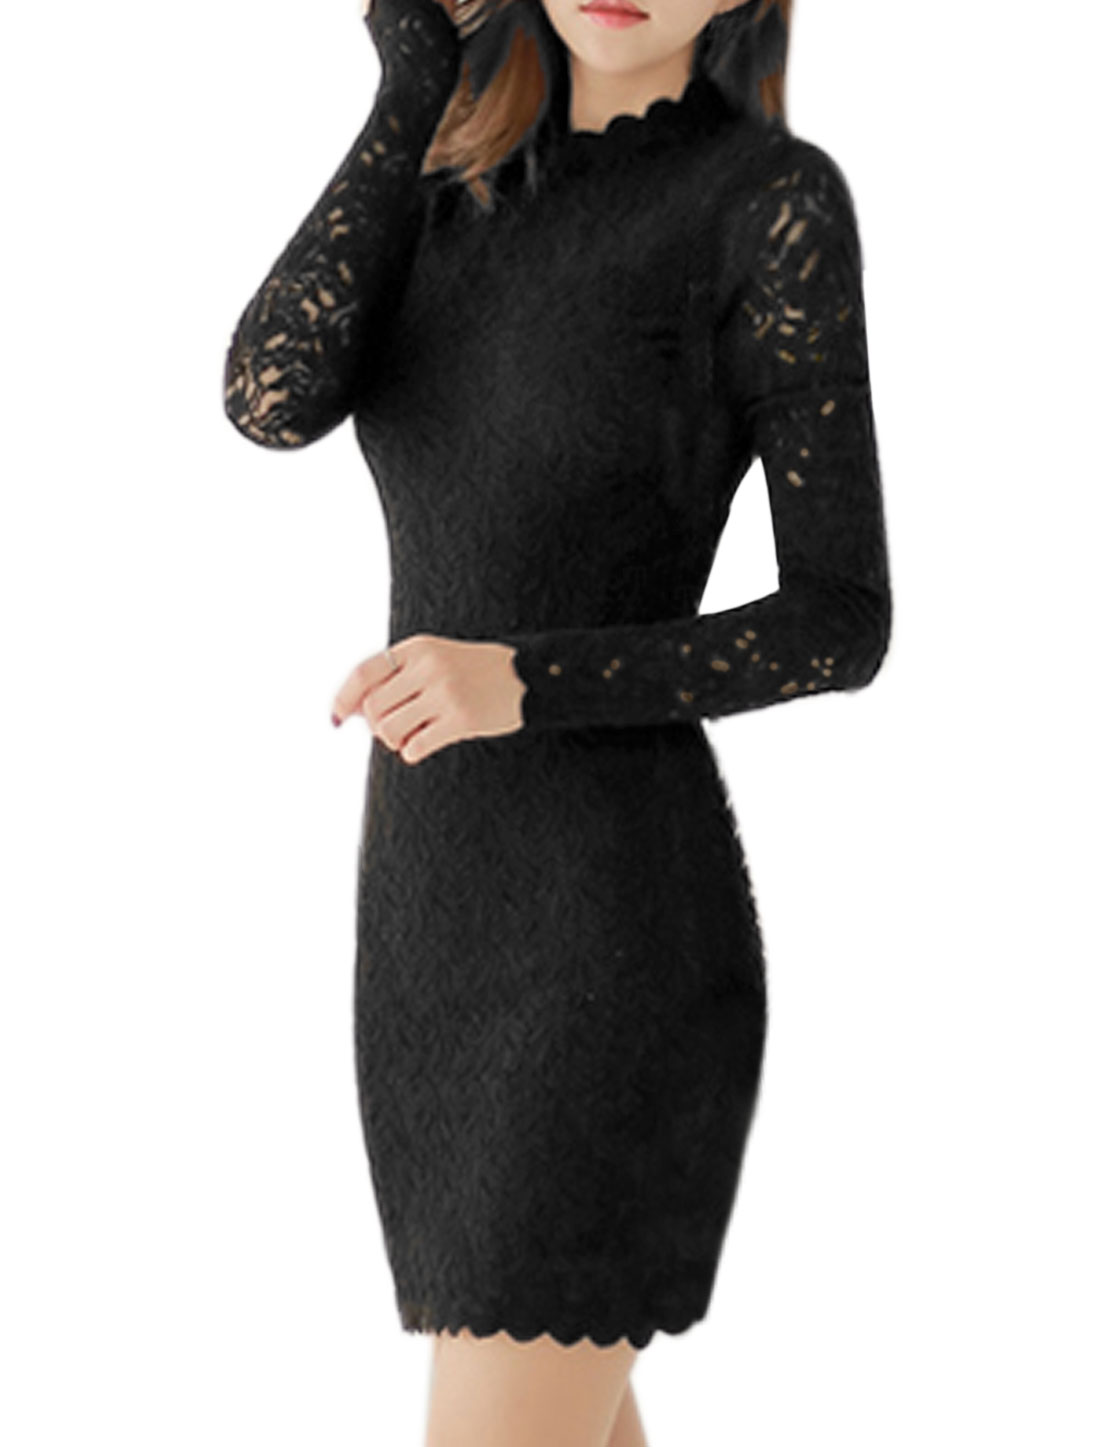 Women Mock Neck Long Sleeves Floral Lace Wiggle Dress Black S